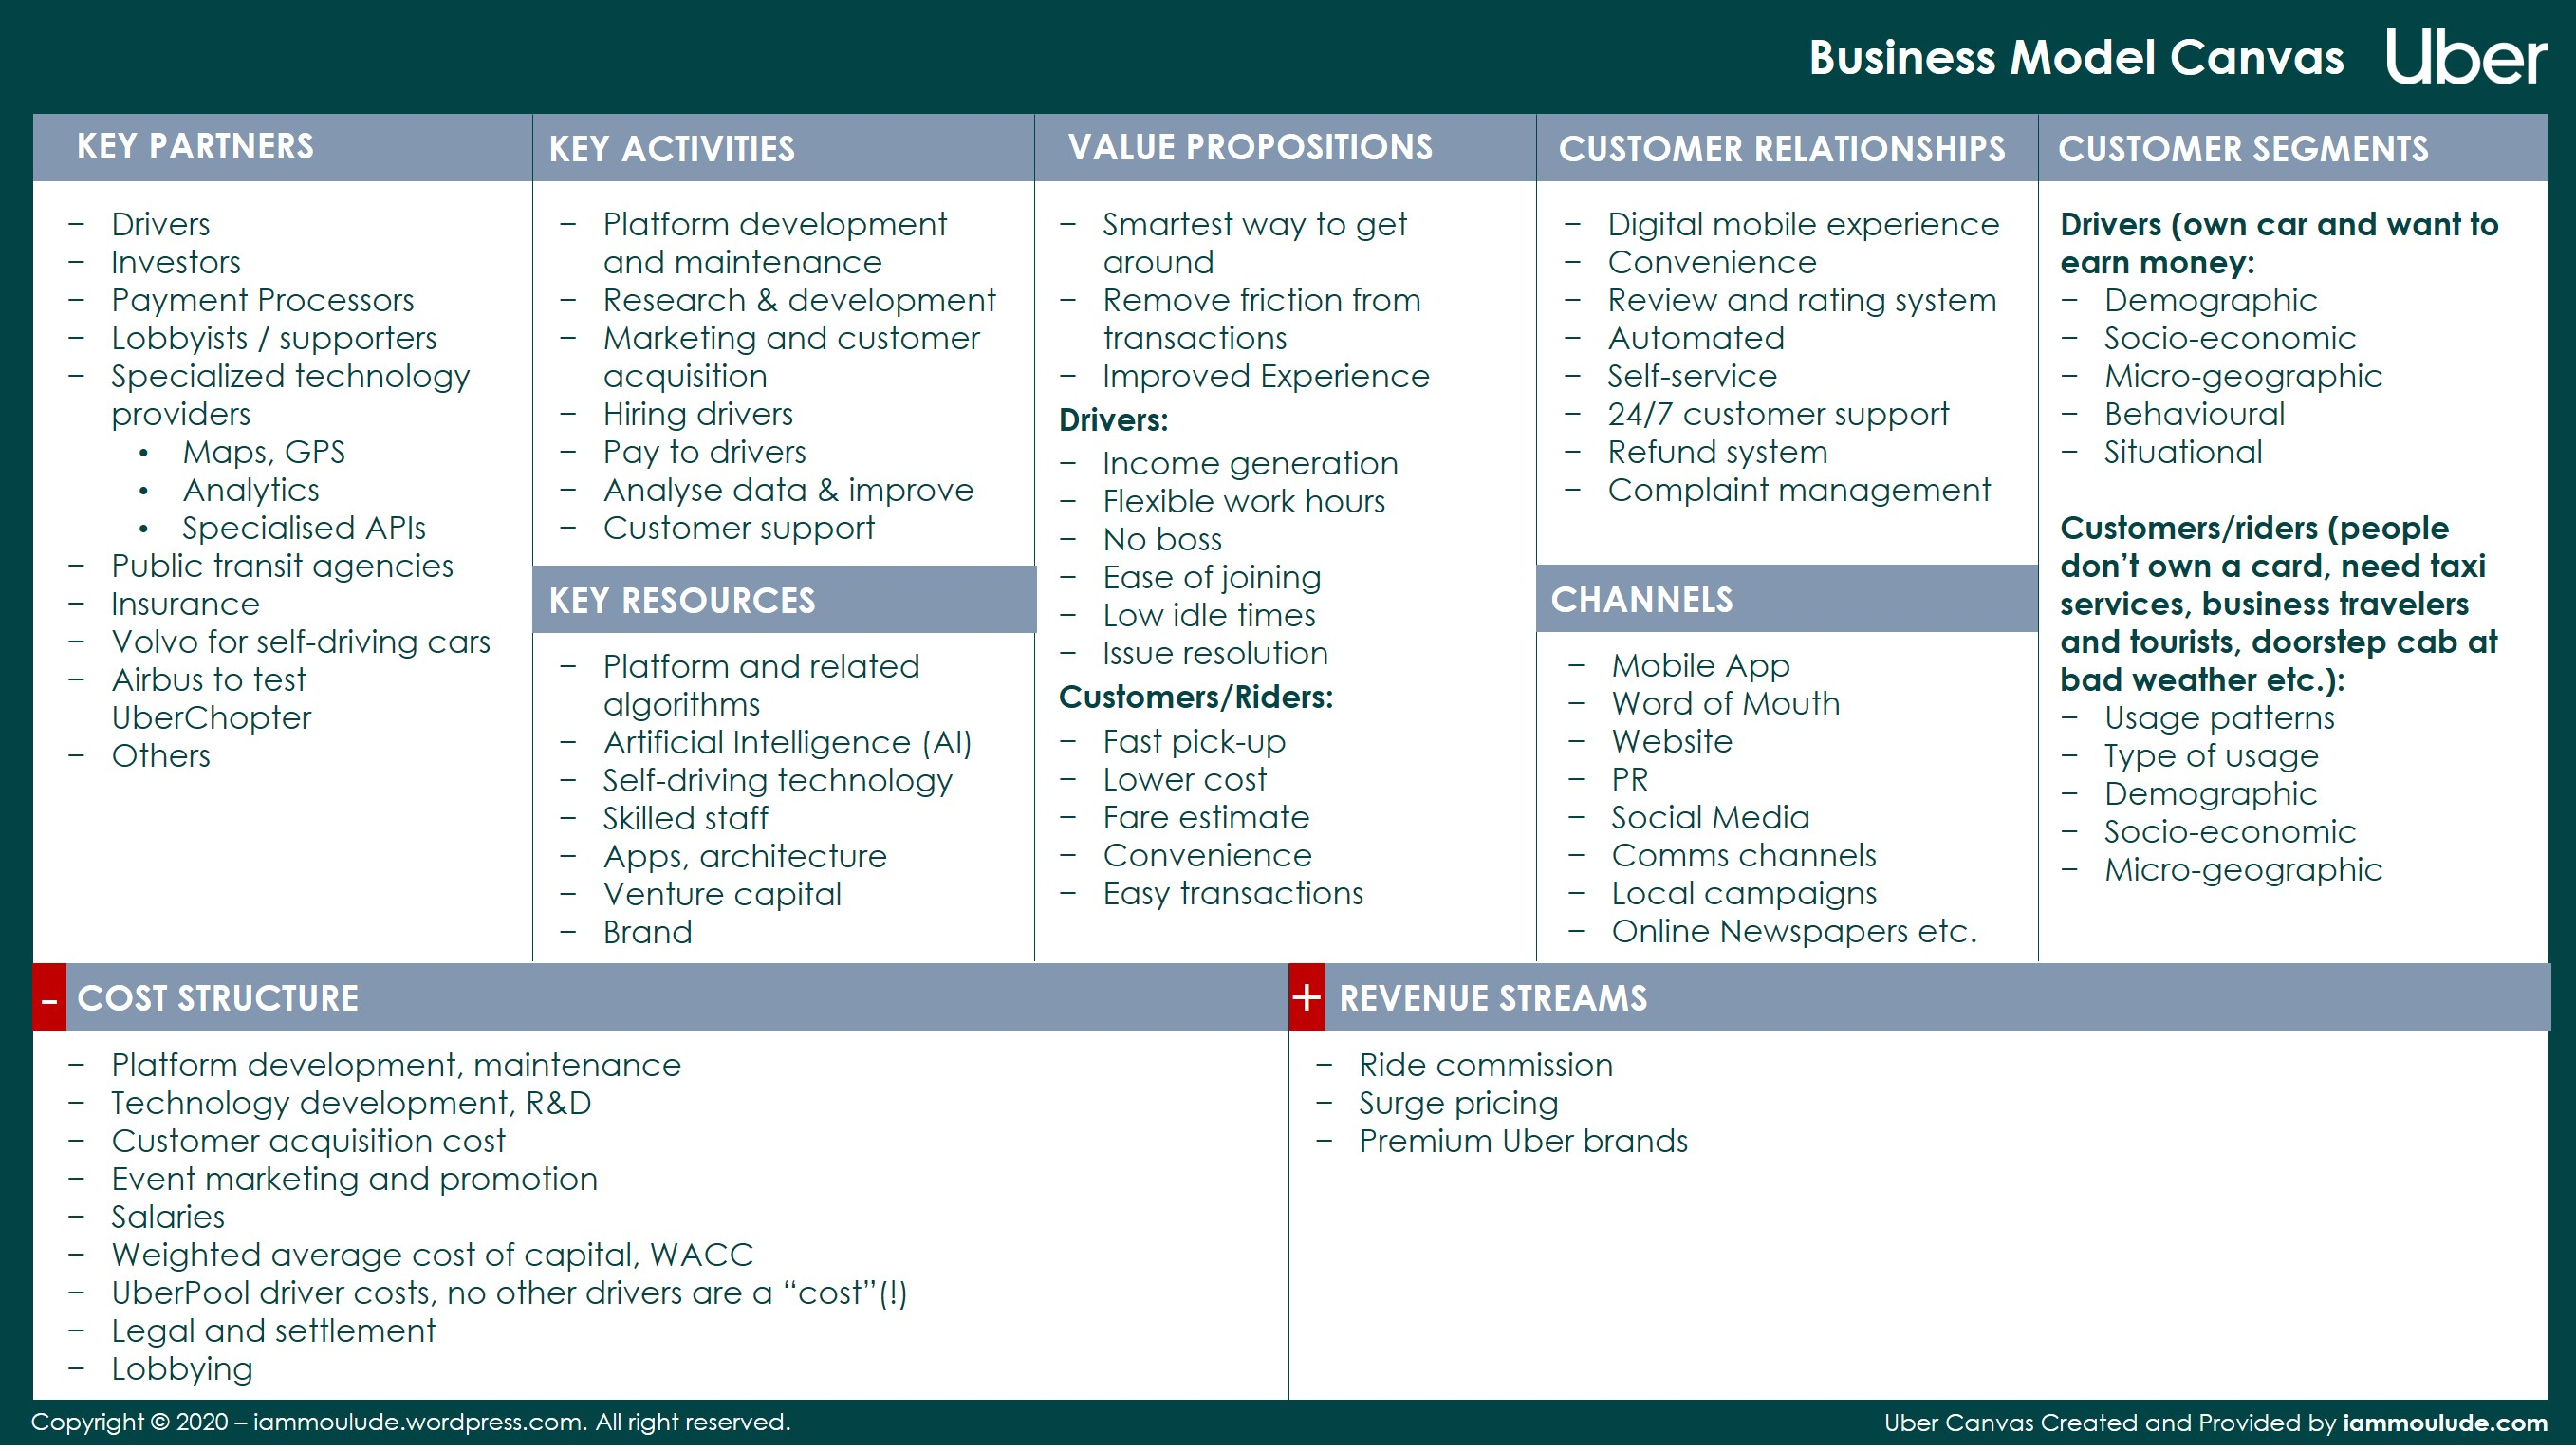 Business Model Canvas_Uber Example